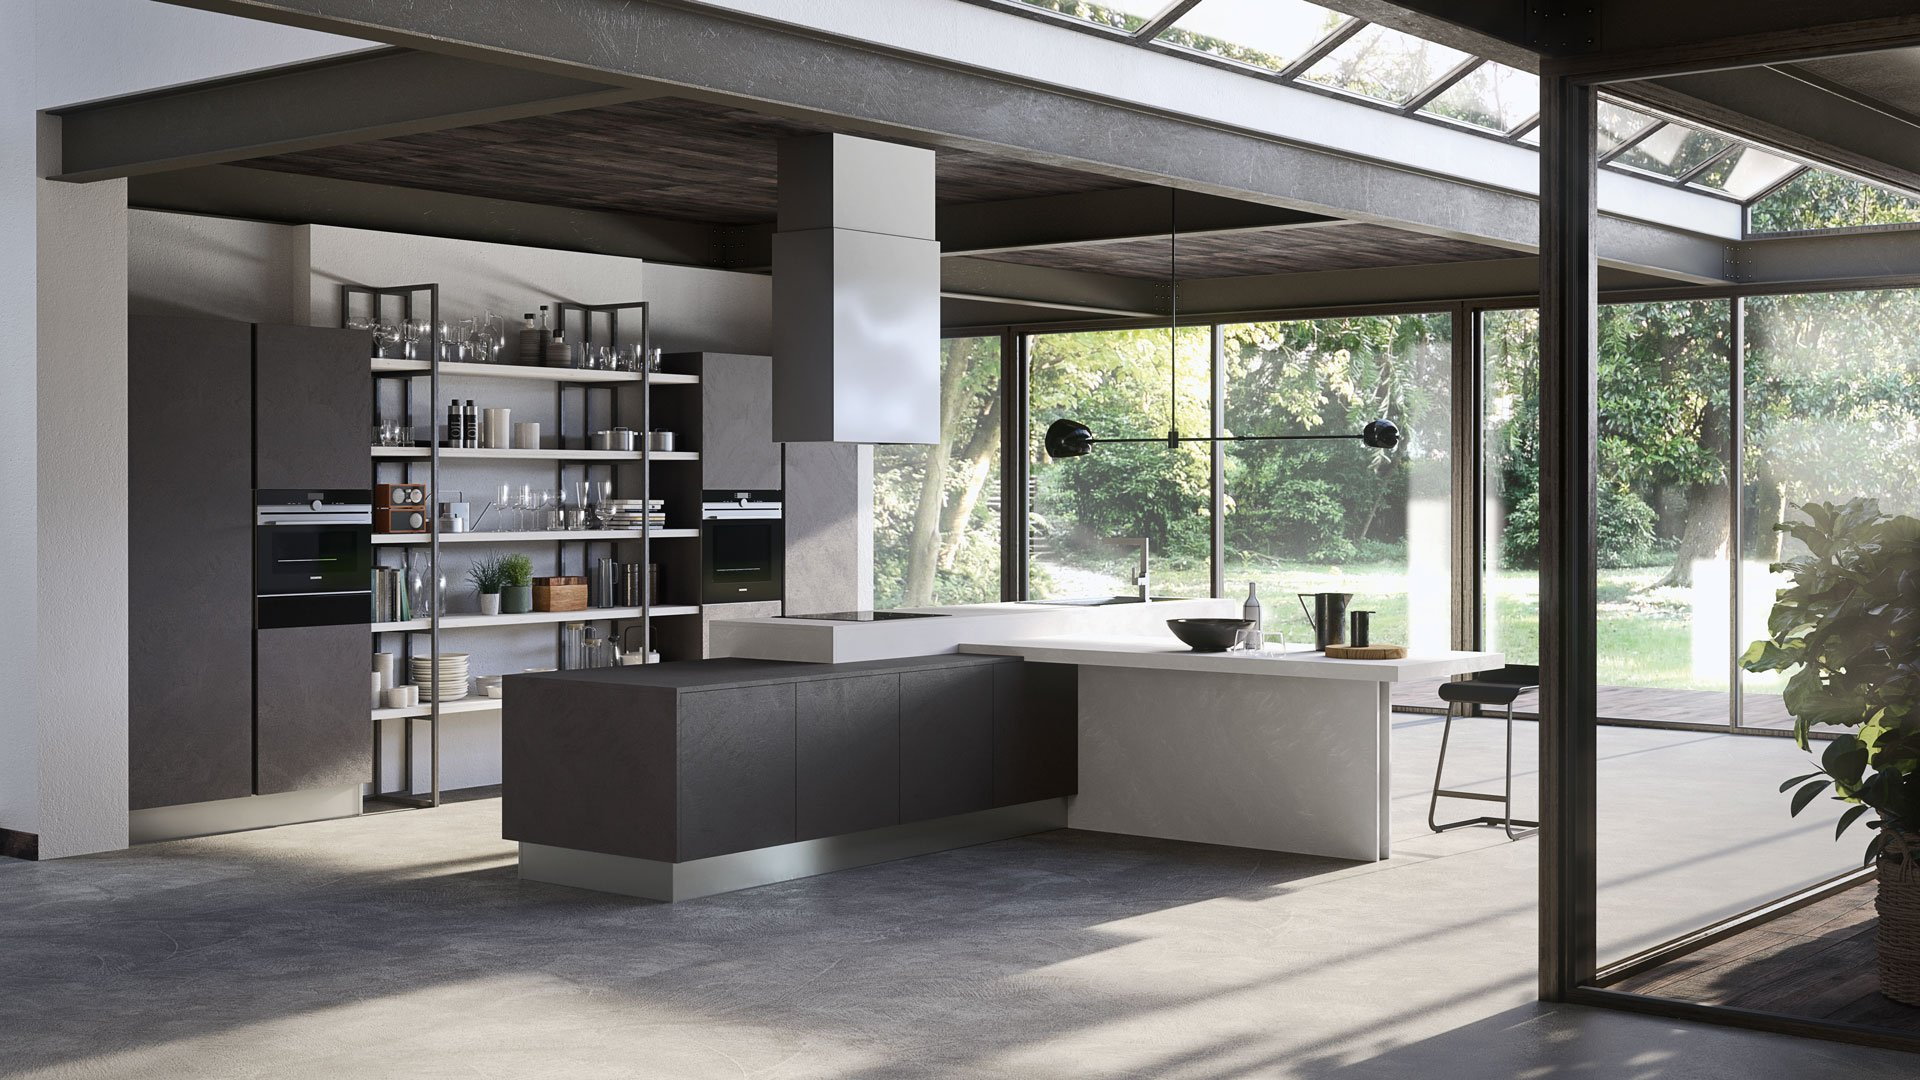 Ordinaire Main Home | Pedini Cucine